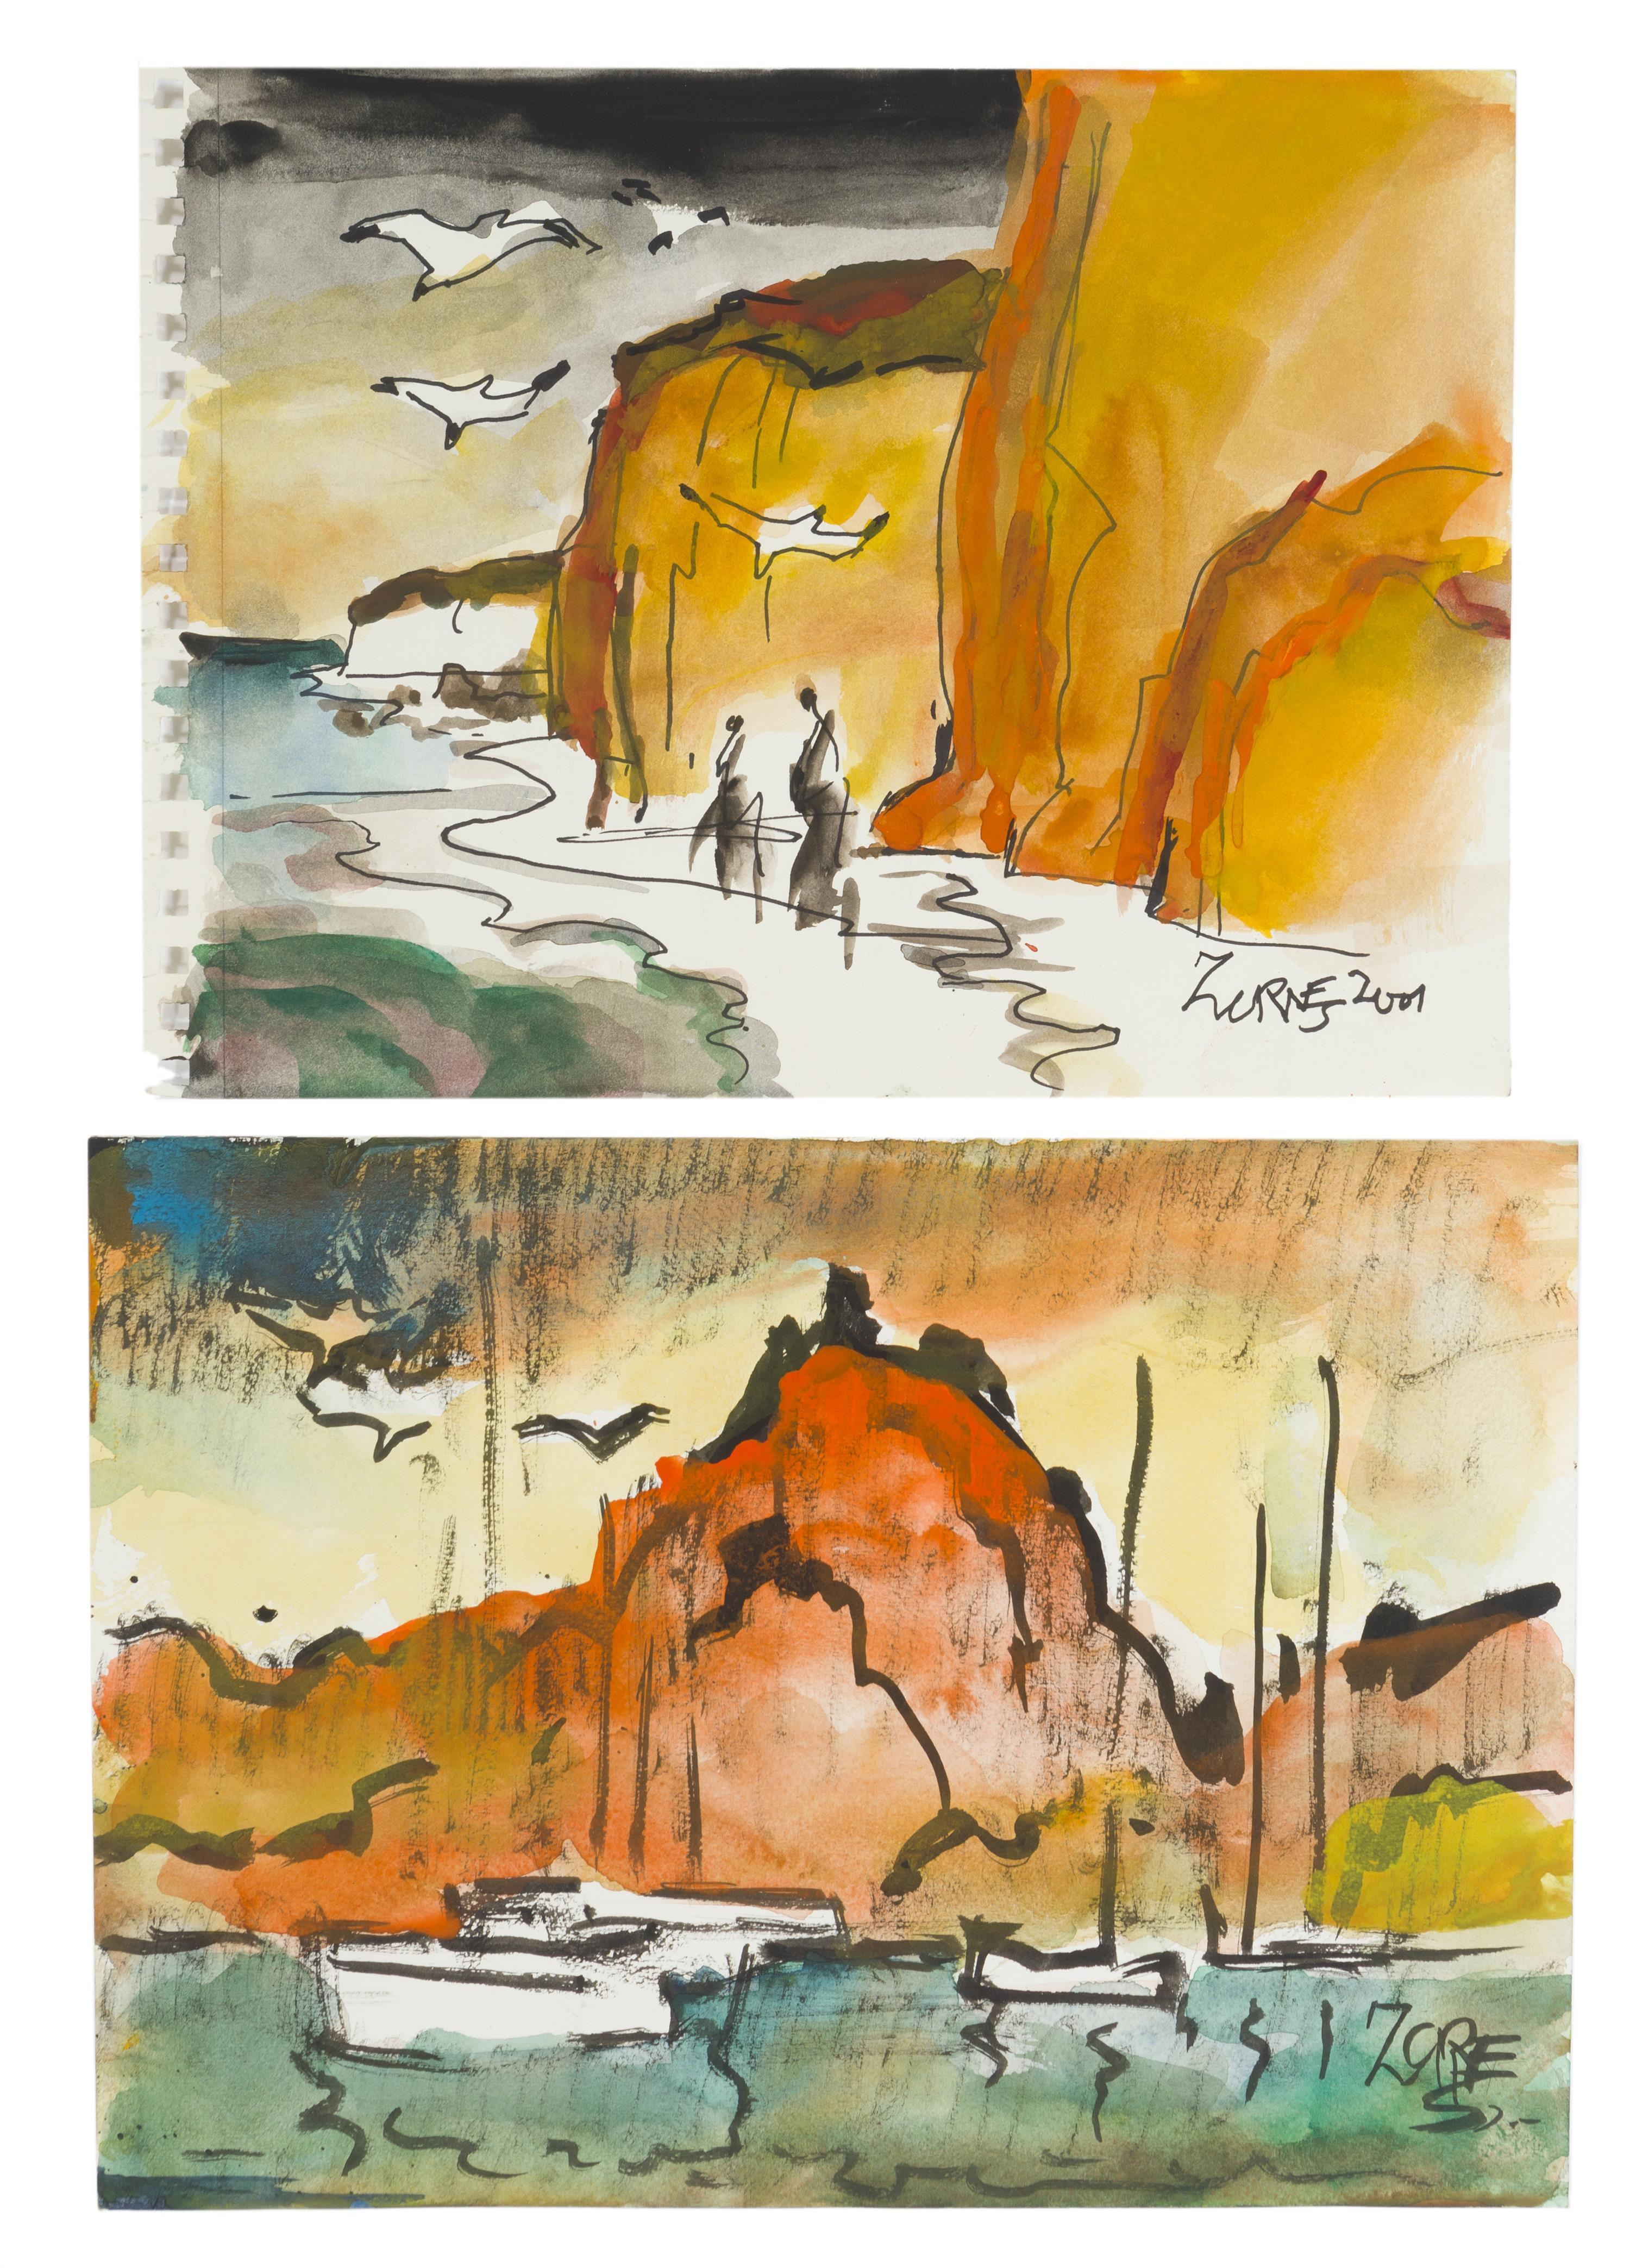 """Milford Zornes NA, (1908-2008 Claremont, CA), """"Cliffs and Sea at Laguna,"""" 2001 and """"San Arles,"""" 2003 (two works), Each: Watercolor on p"""